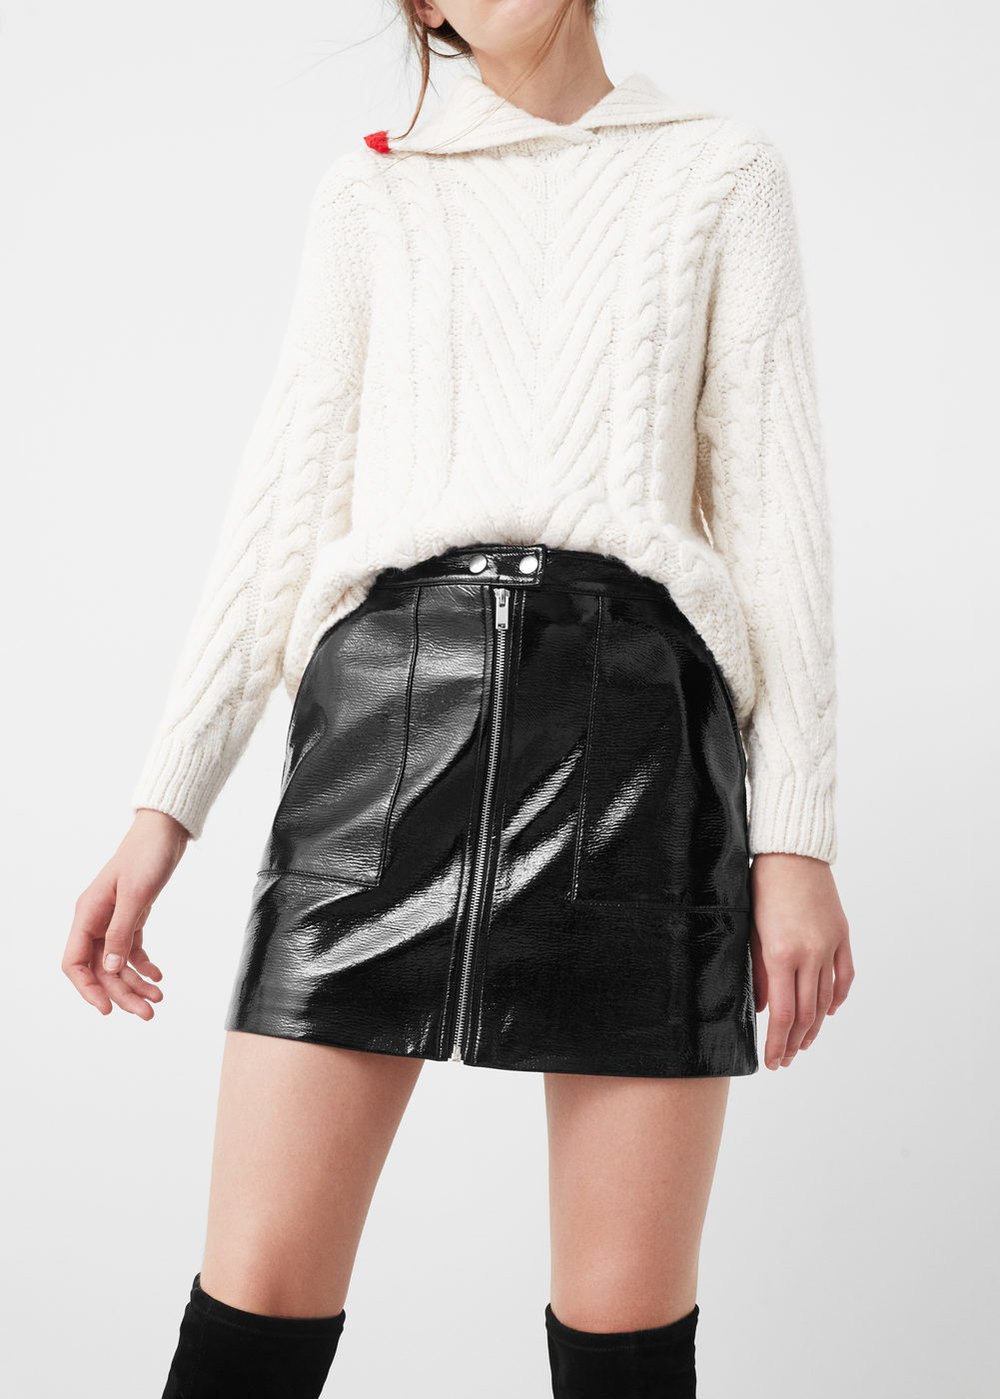 Everyone needs a good [faux] leather skirt. And   this one  , while it's black, has nice detailing added that makes it not-so-boring.